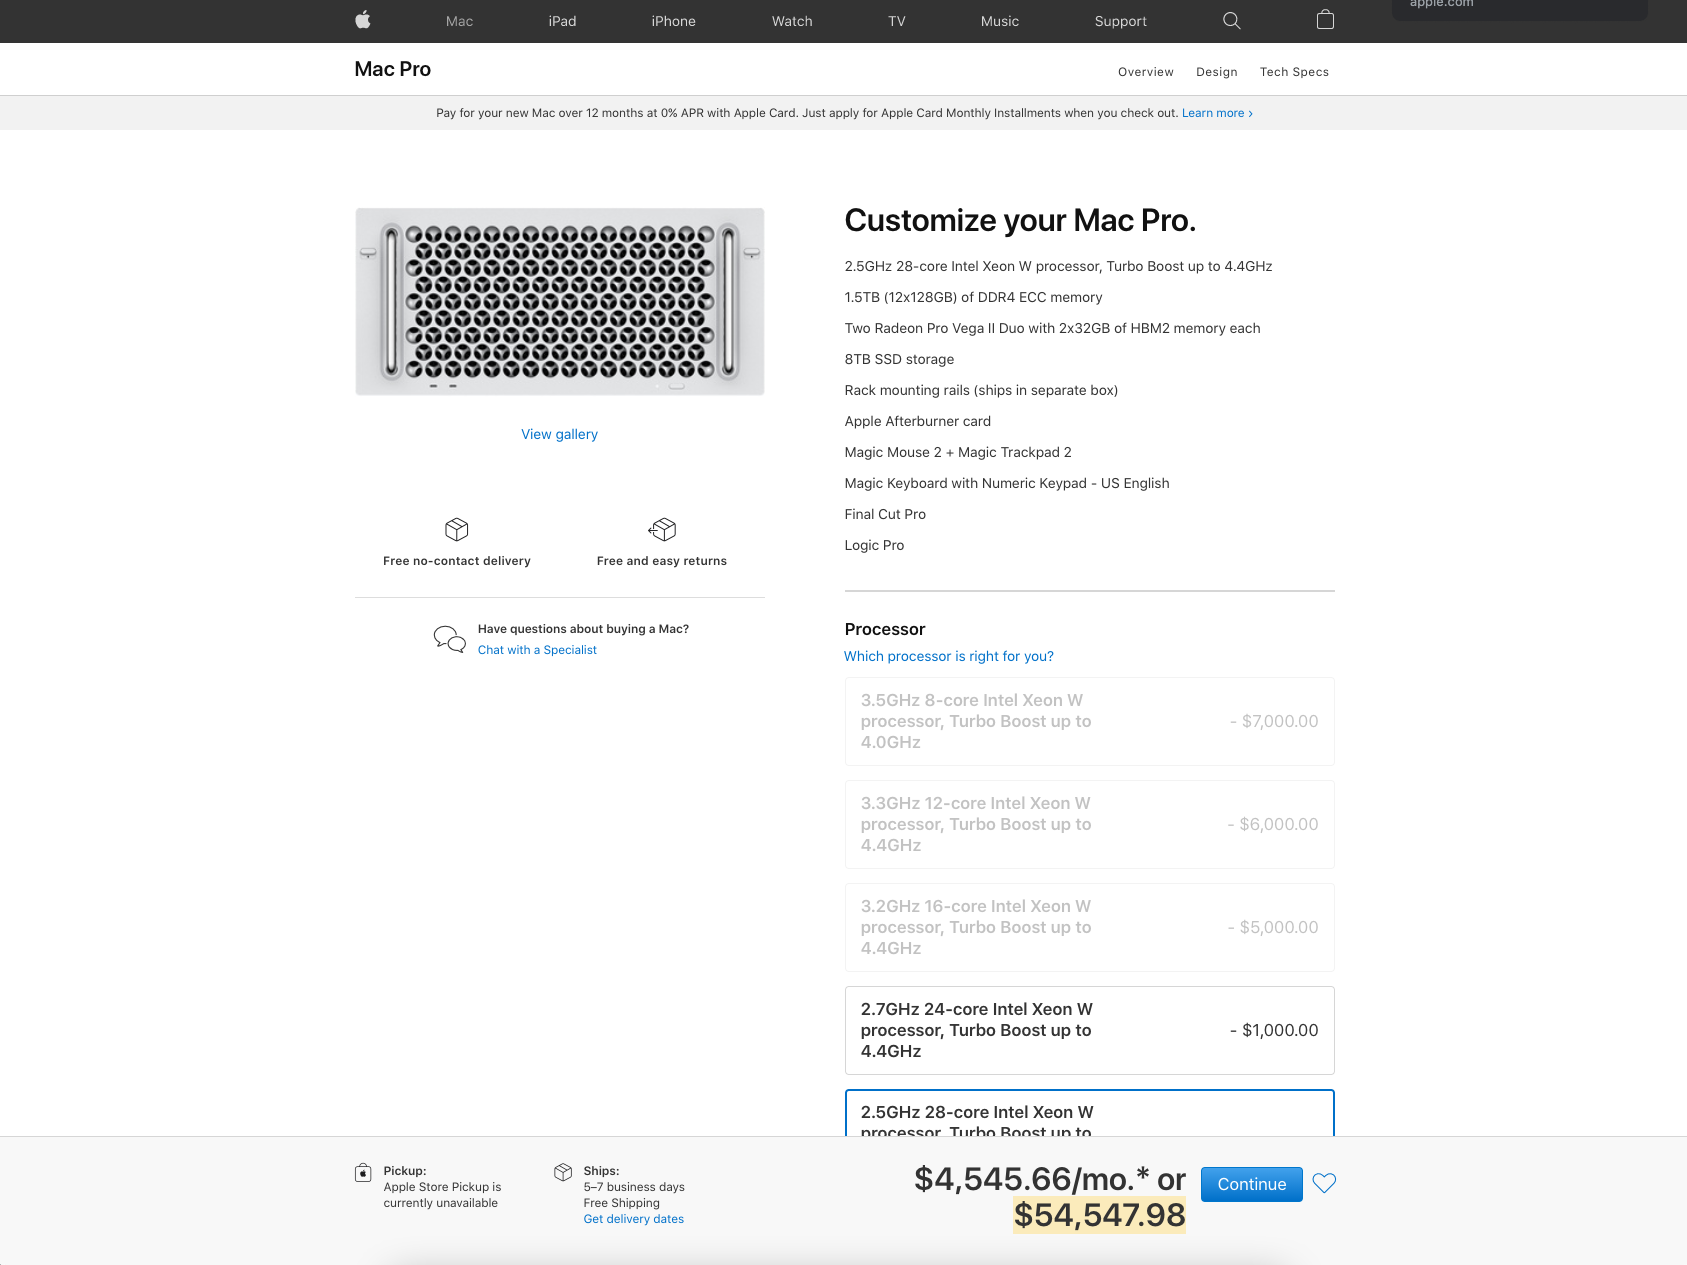 Screenshot of the price of the Mac Pro - Ed Orozco helping design agencies scale.